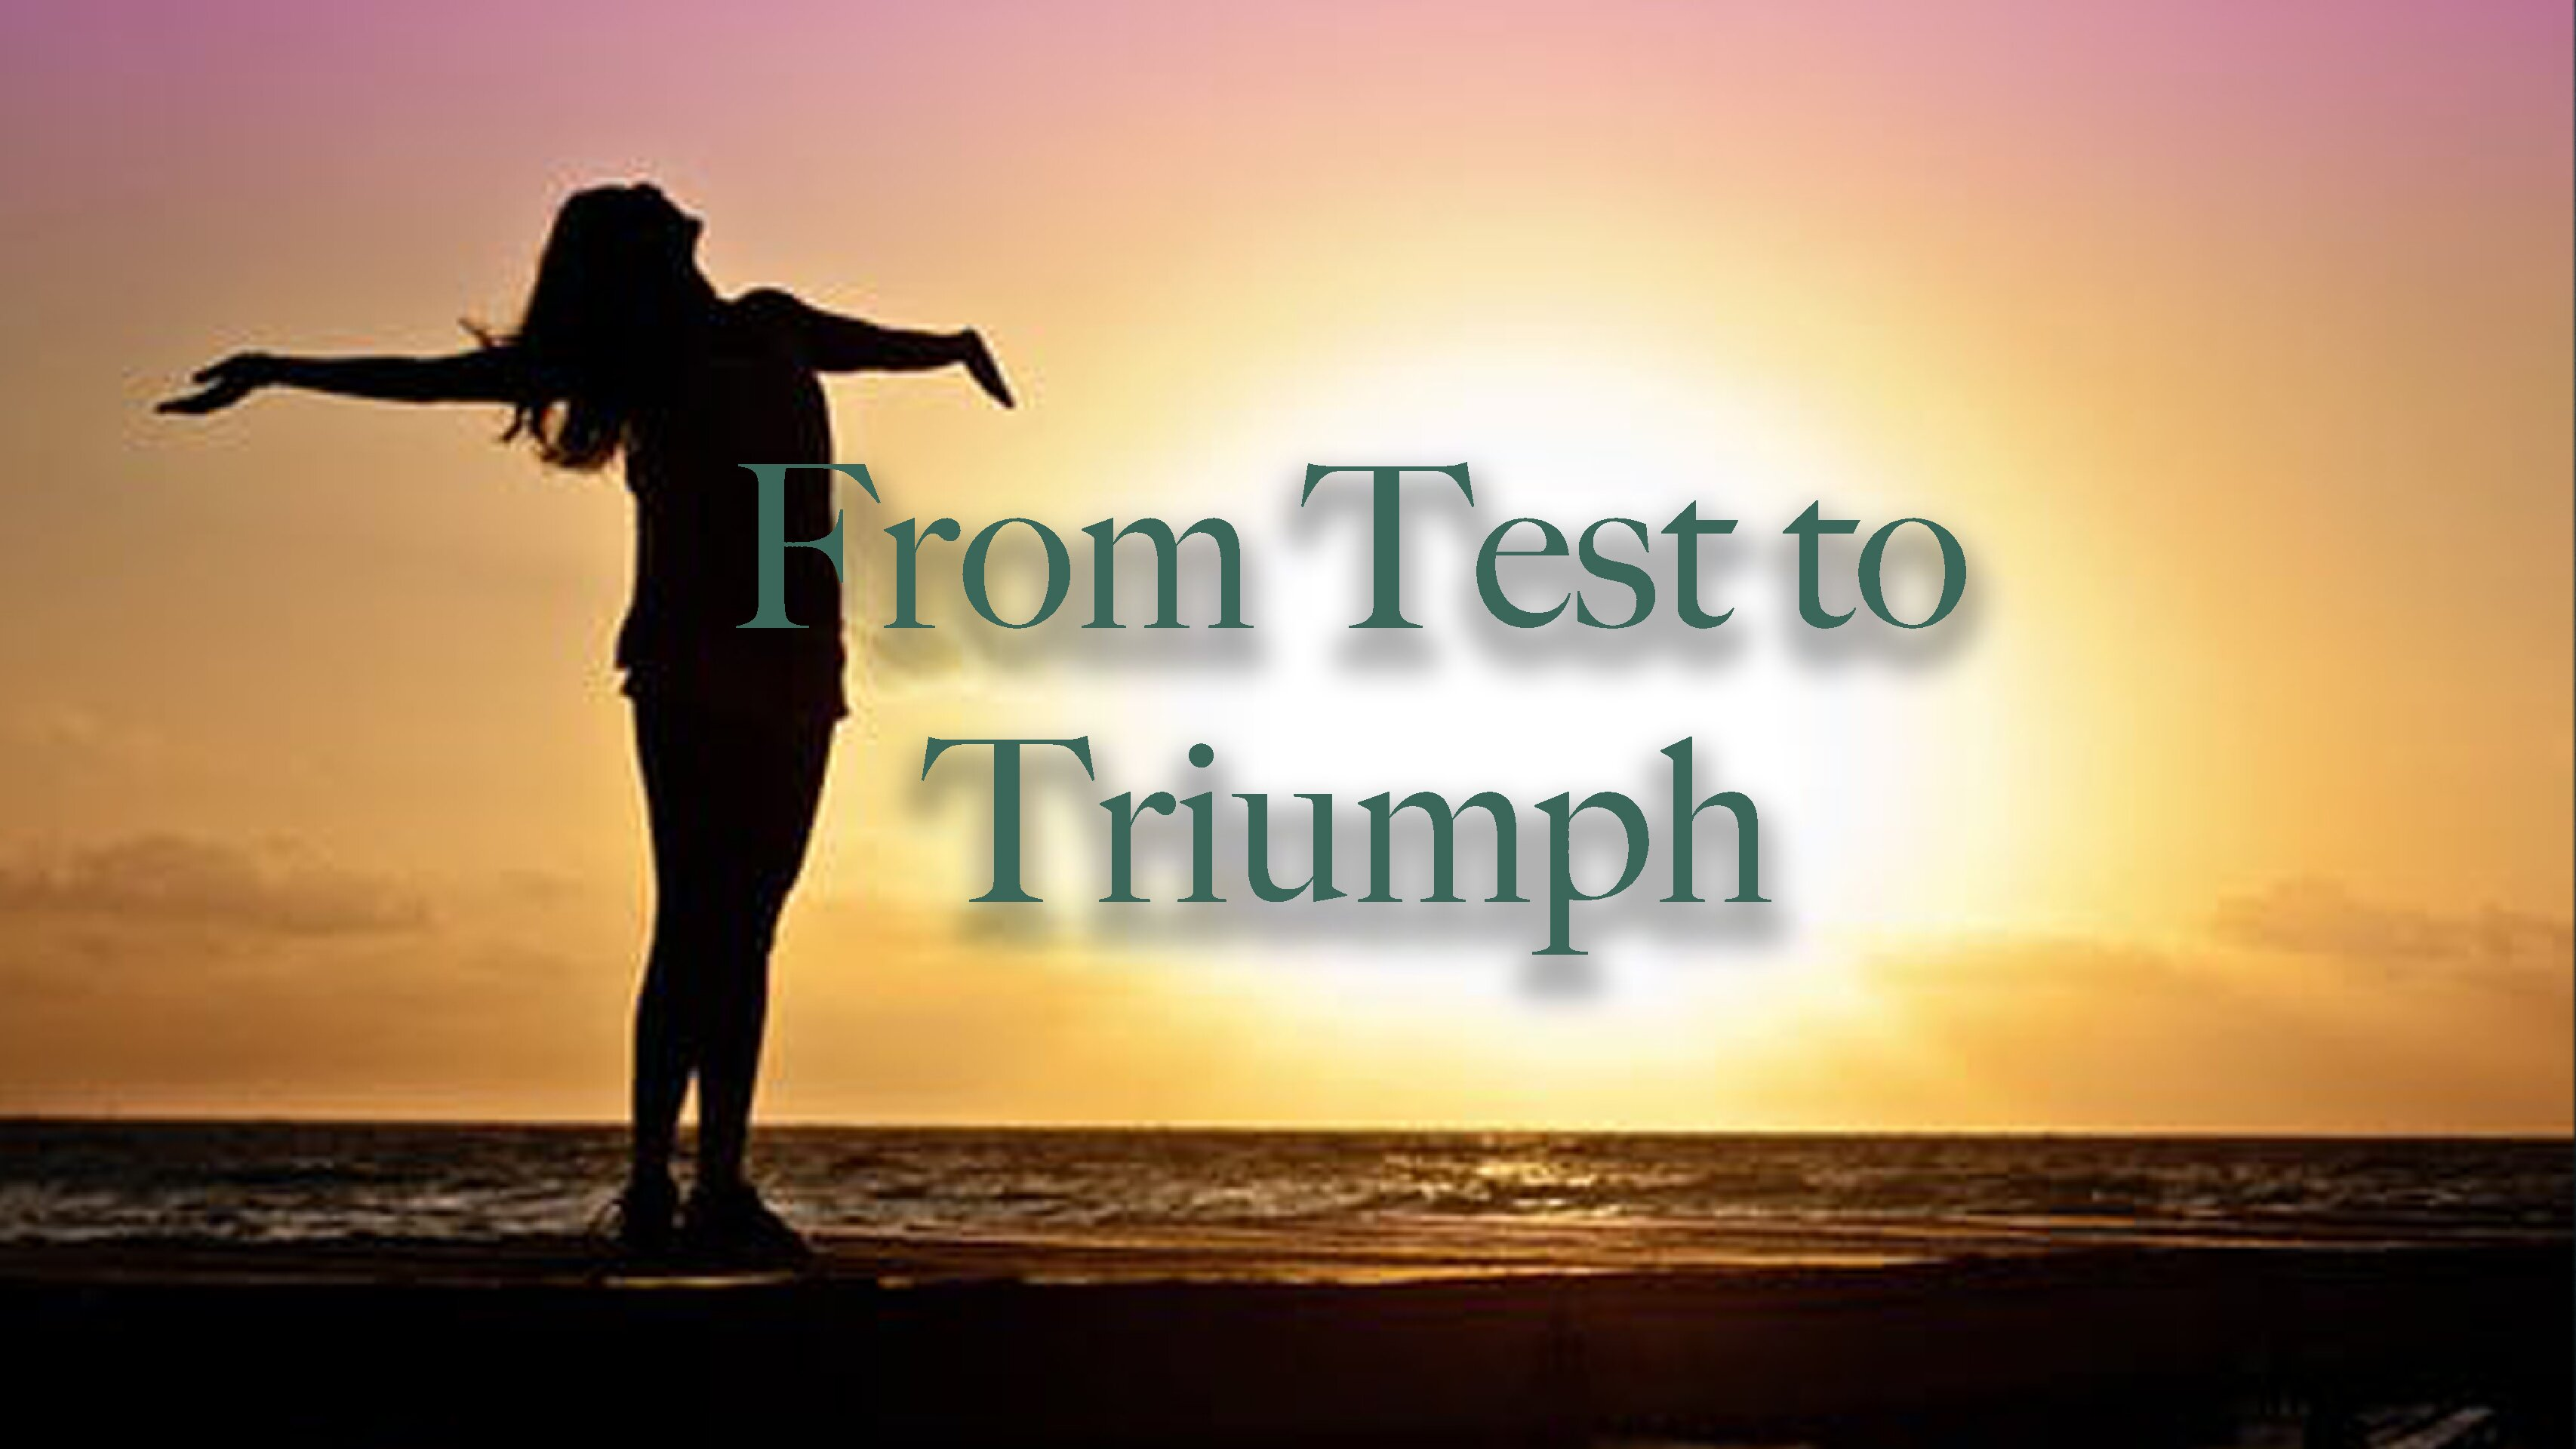 From Test to Triumph